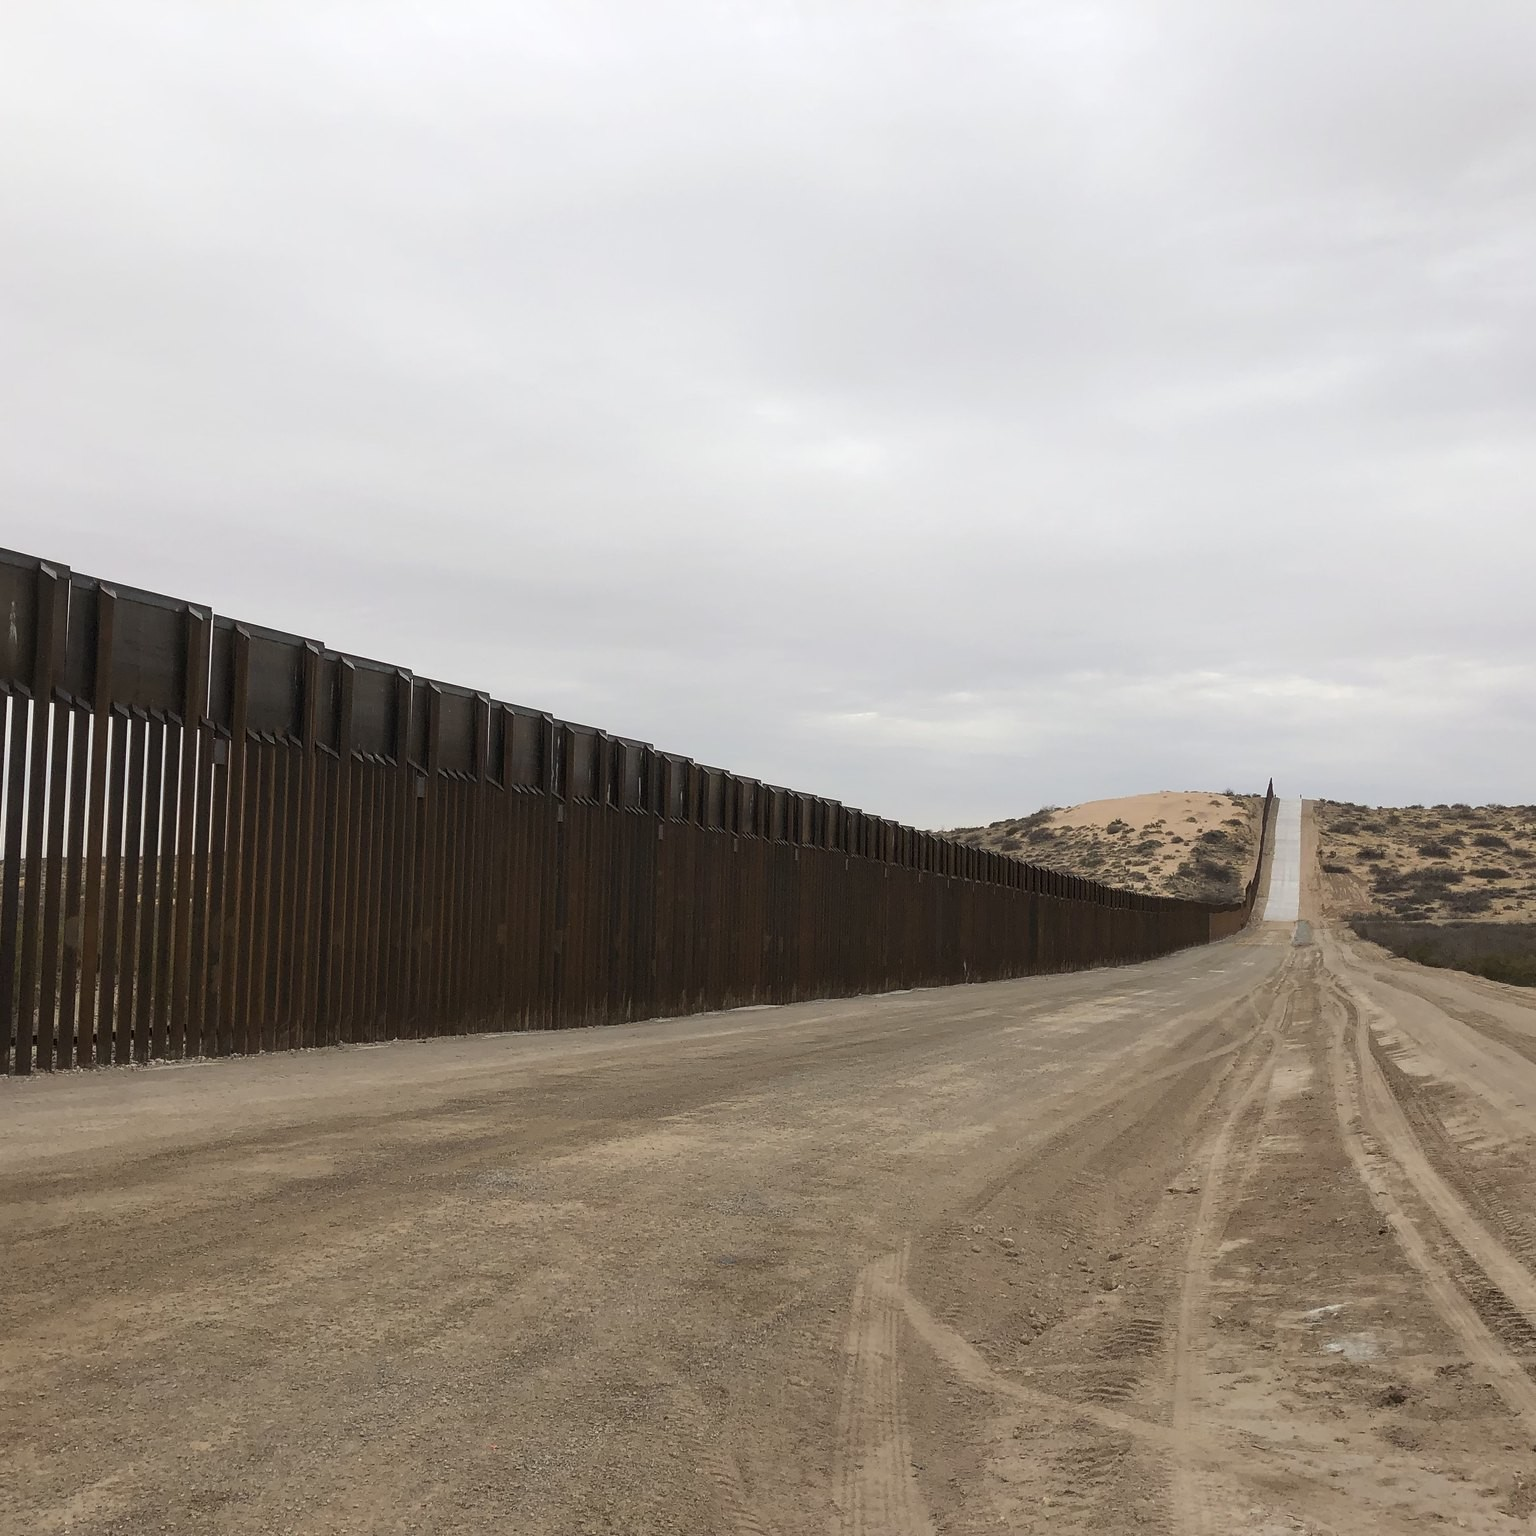 US/Mexico border wall in Arizona. Photo: Flickr/Russ McSpadden